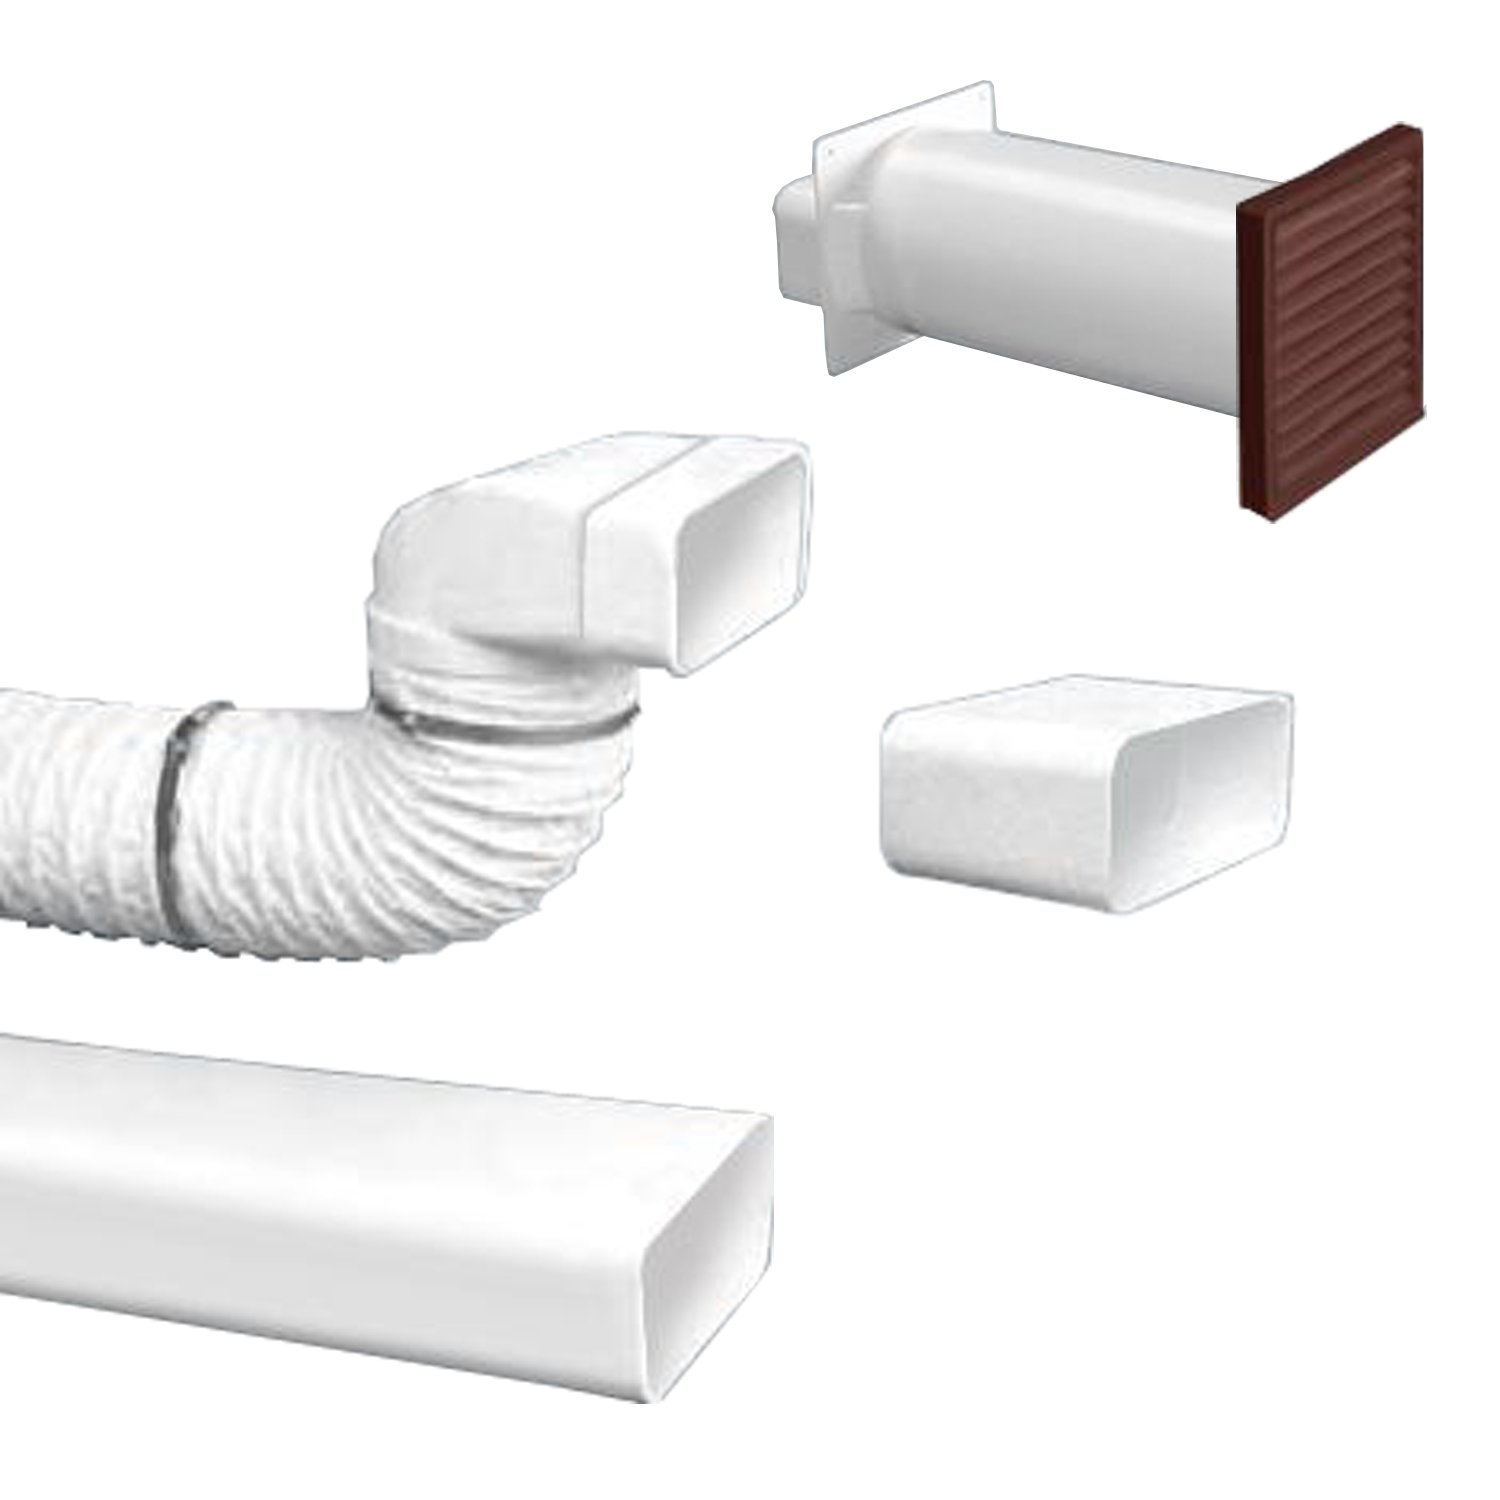 Bielmeier BIELMEIER High Performance Flat Pipe Kit-System 125 Soft/Brown 658006 V658006